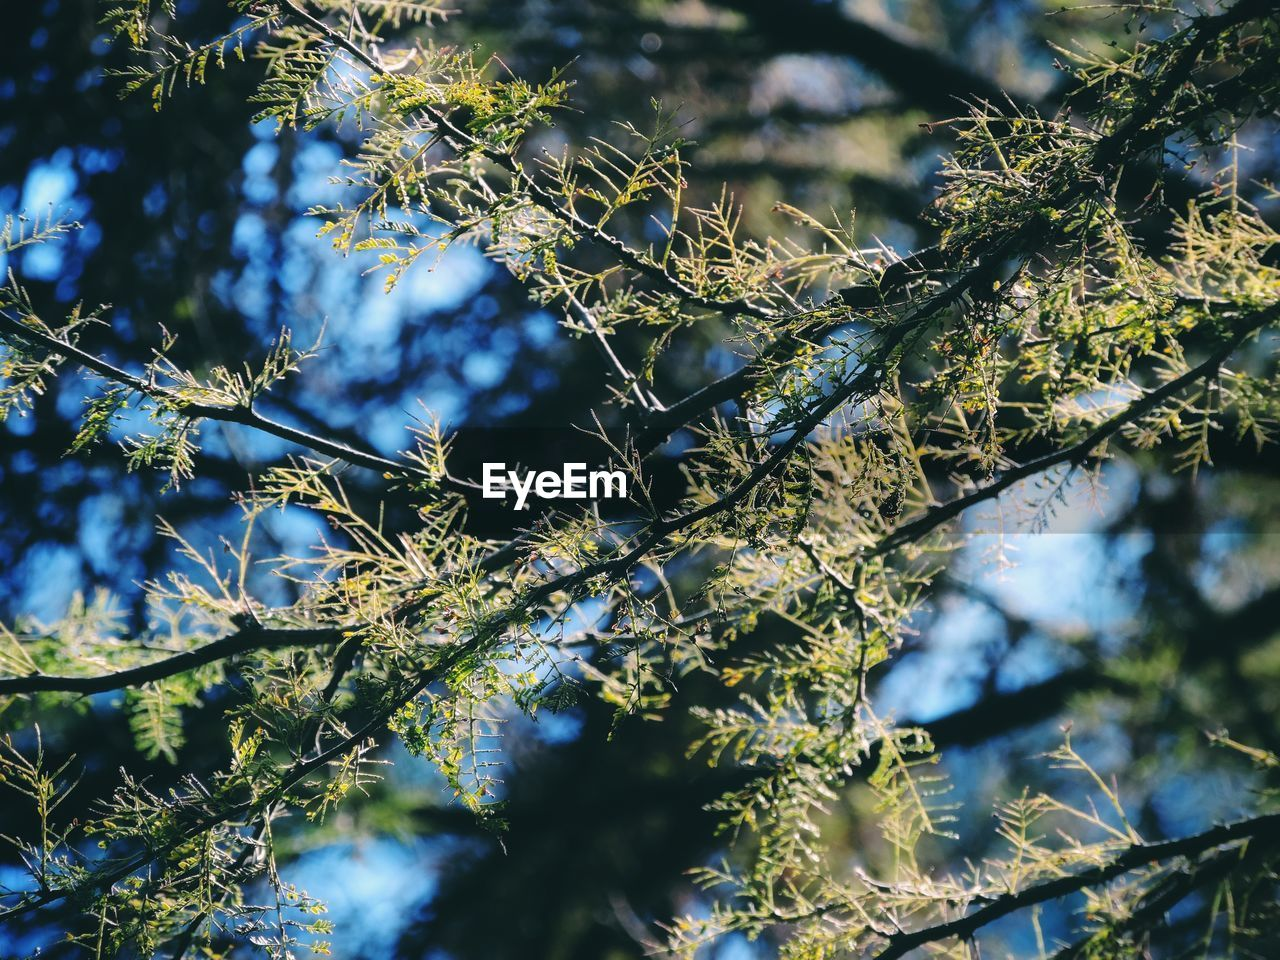 plant, tree, branch, growth, selective focus, day, nature, no people, beauty in nature, leaf, low angle view, tranquility, plant part, close-up, sunlight, green color, outdoors, cold temperature, winter, focus on foreground, lichen